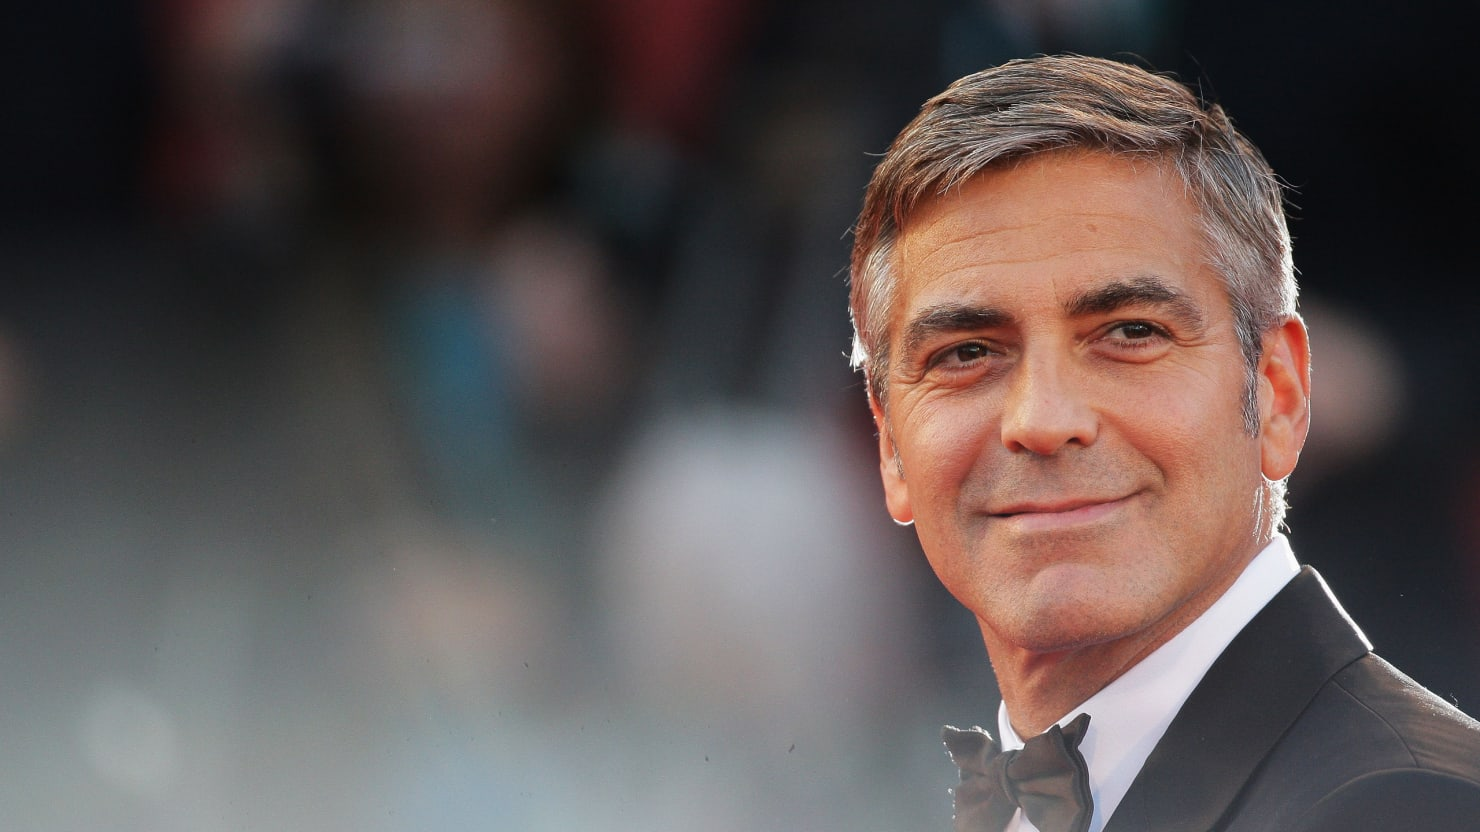 Clooney: A Constant Charmer at the Altar